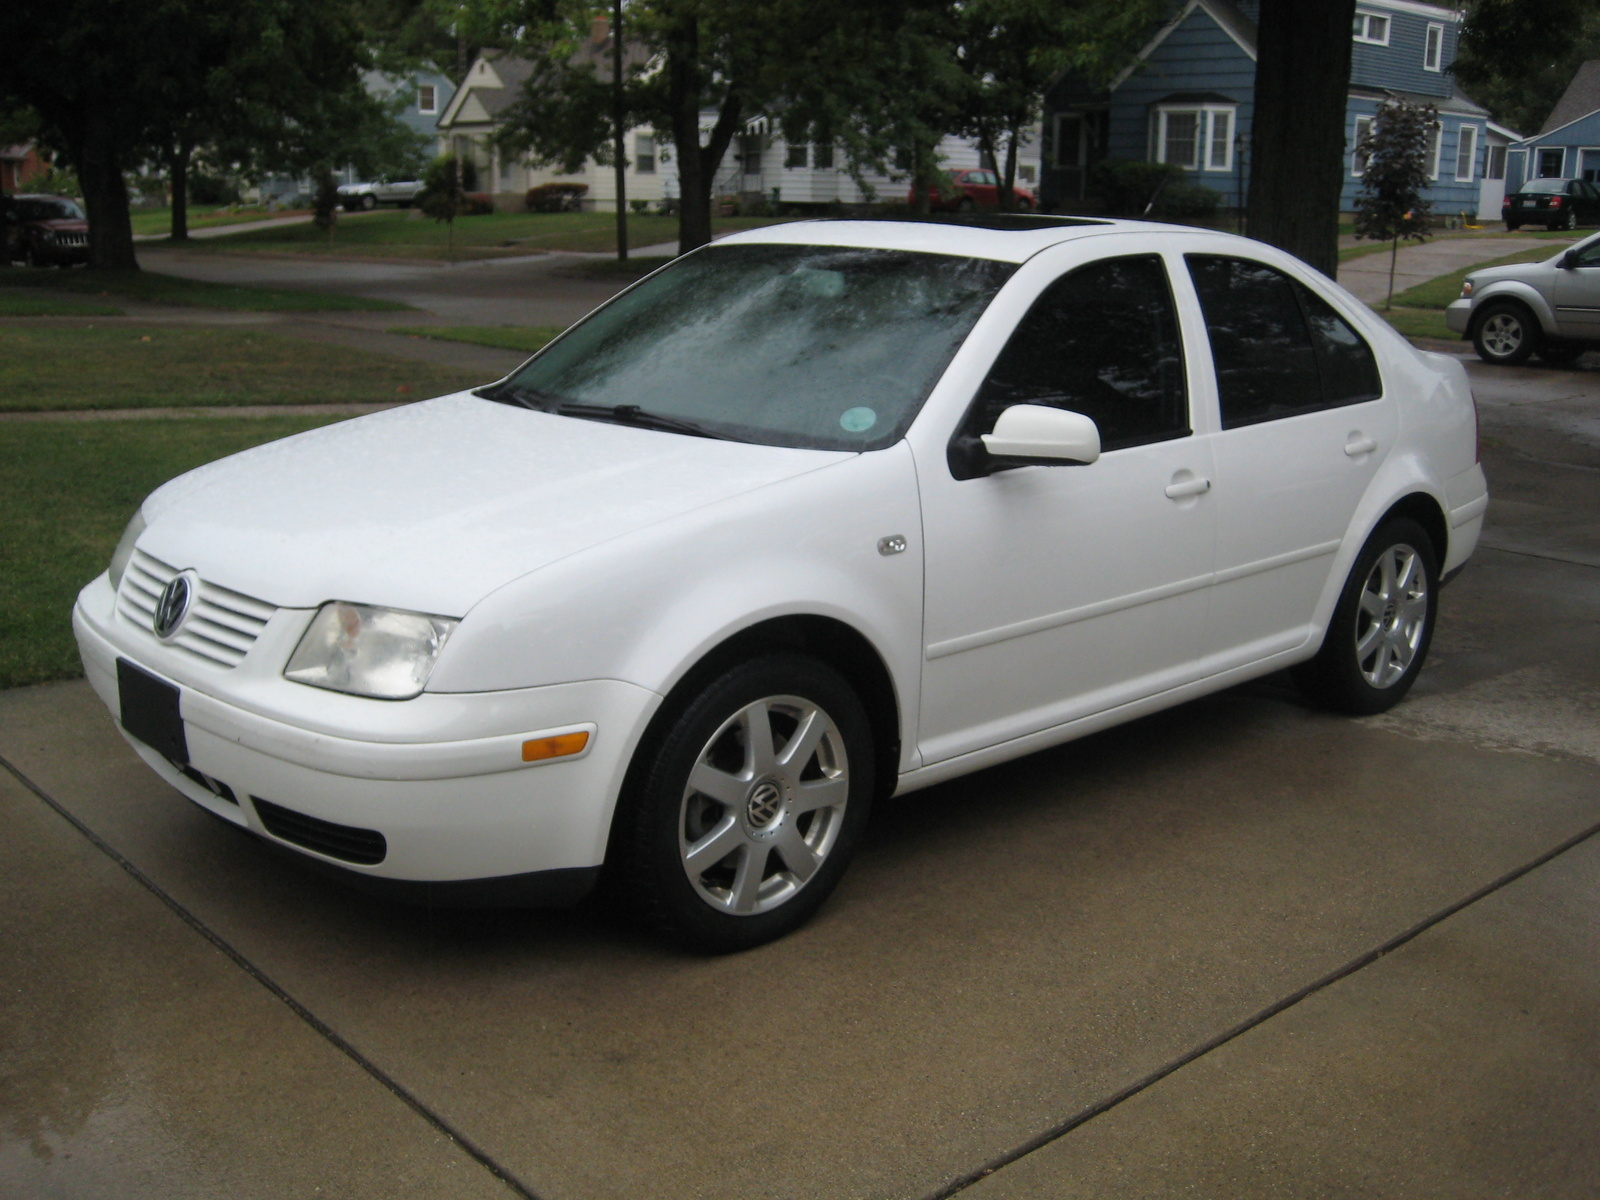 What Would Win In A Drag Race  2002 Vw Jetta Vr6 Or 2002 Volvo S80 T6    Cars